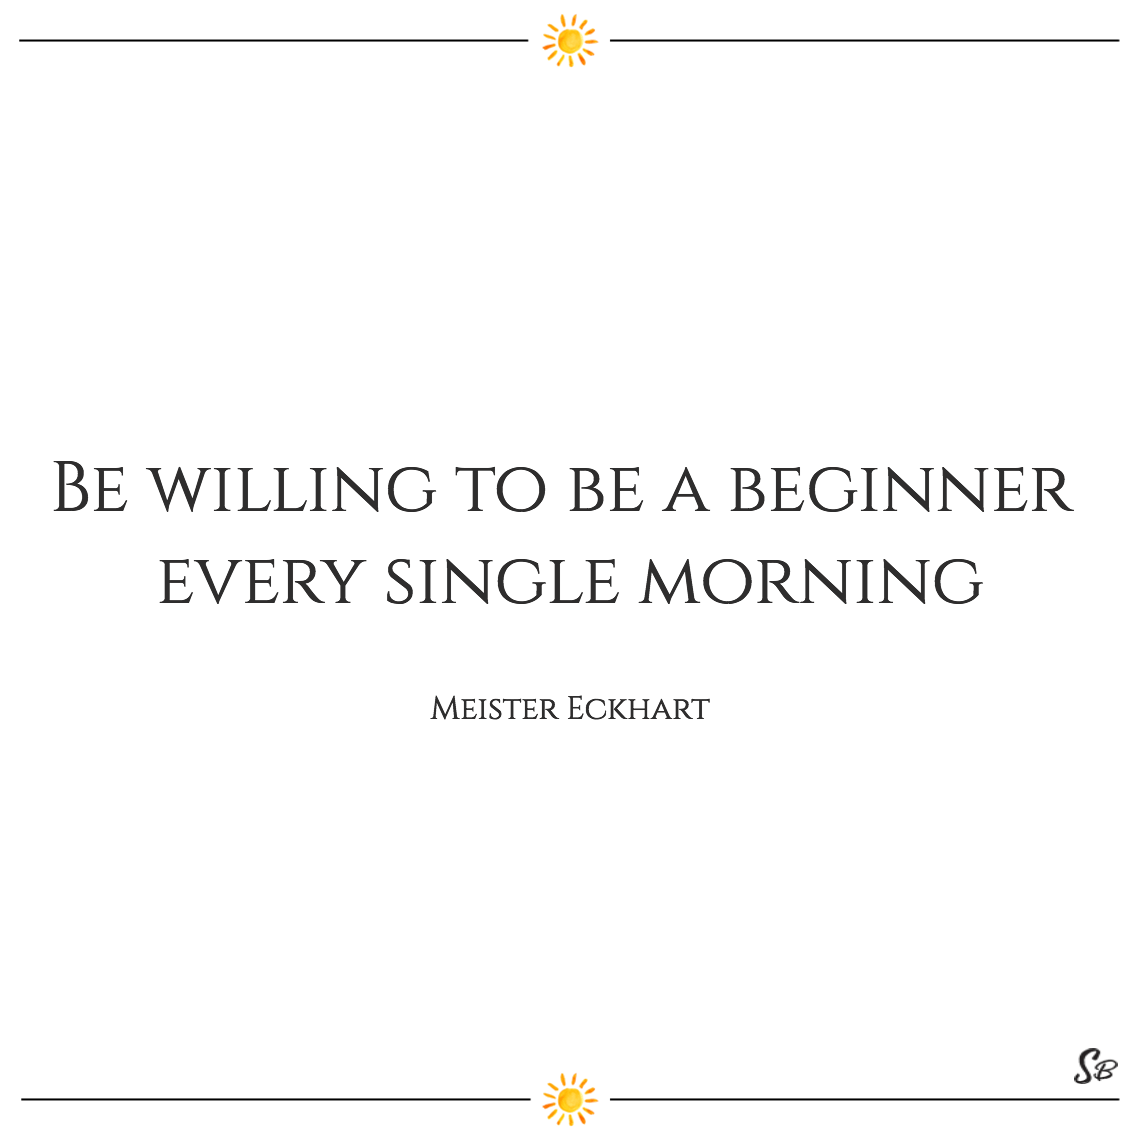 Be willing to be a beginner every single morning meister eckhart